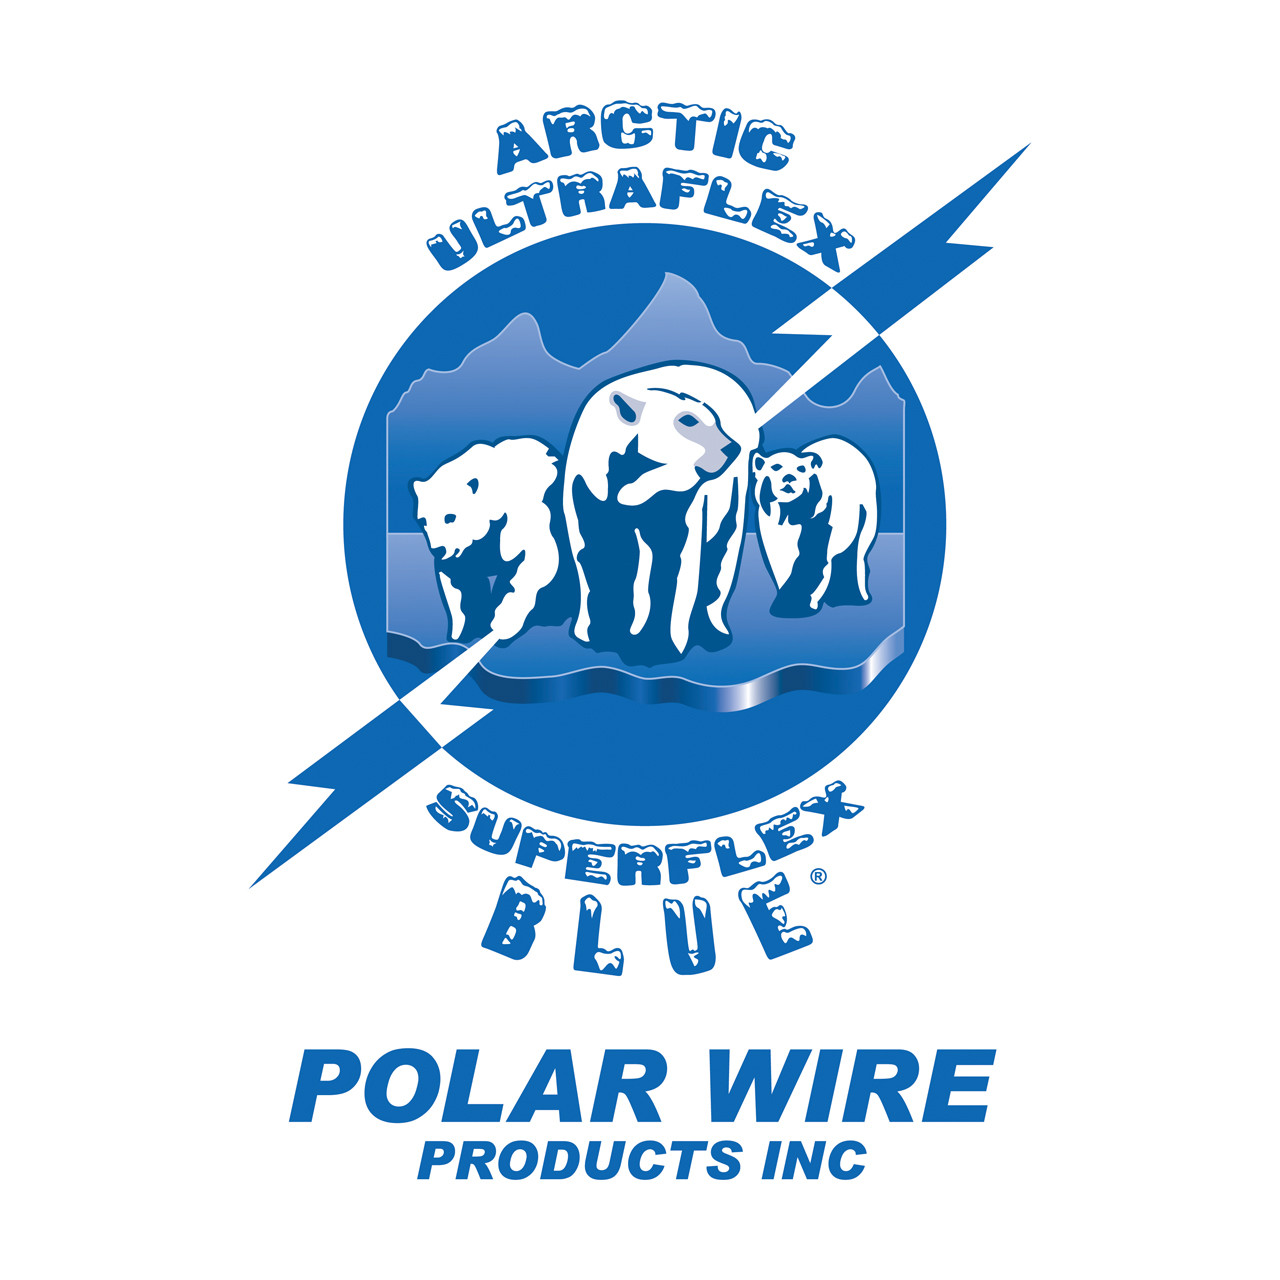 Arctic Ultraflex Blue and Arctic Superflex Blue 100% copper Class K fine stranded cold weather flexible wire is manufactured exclusively by Polar Wire Products. Made in the USA